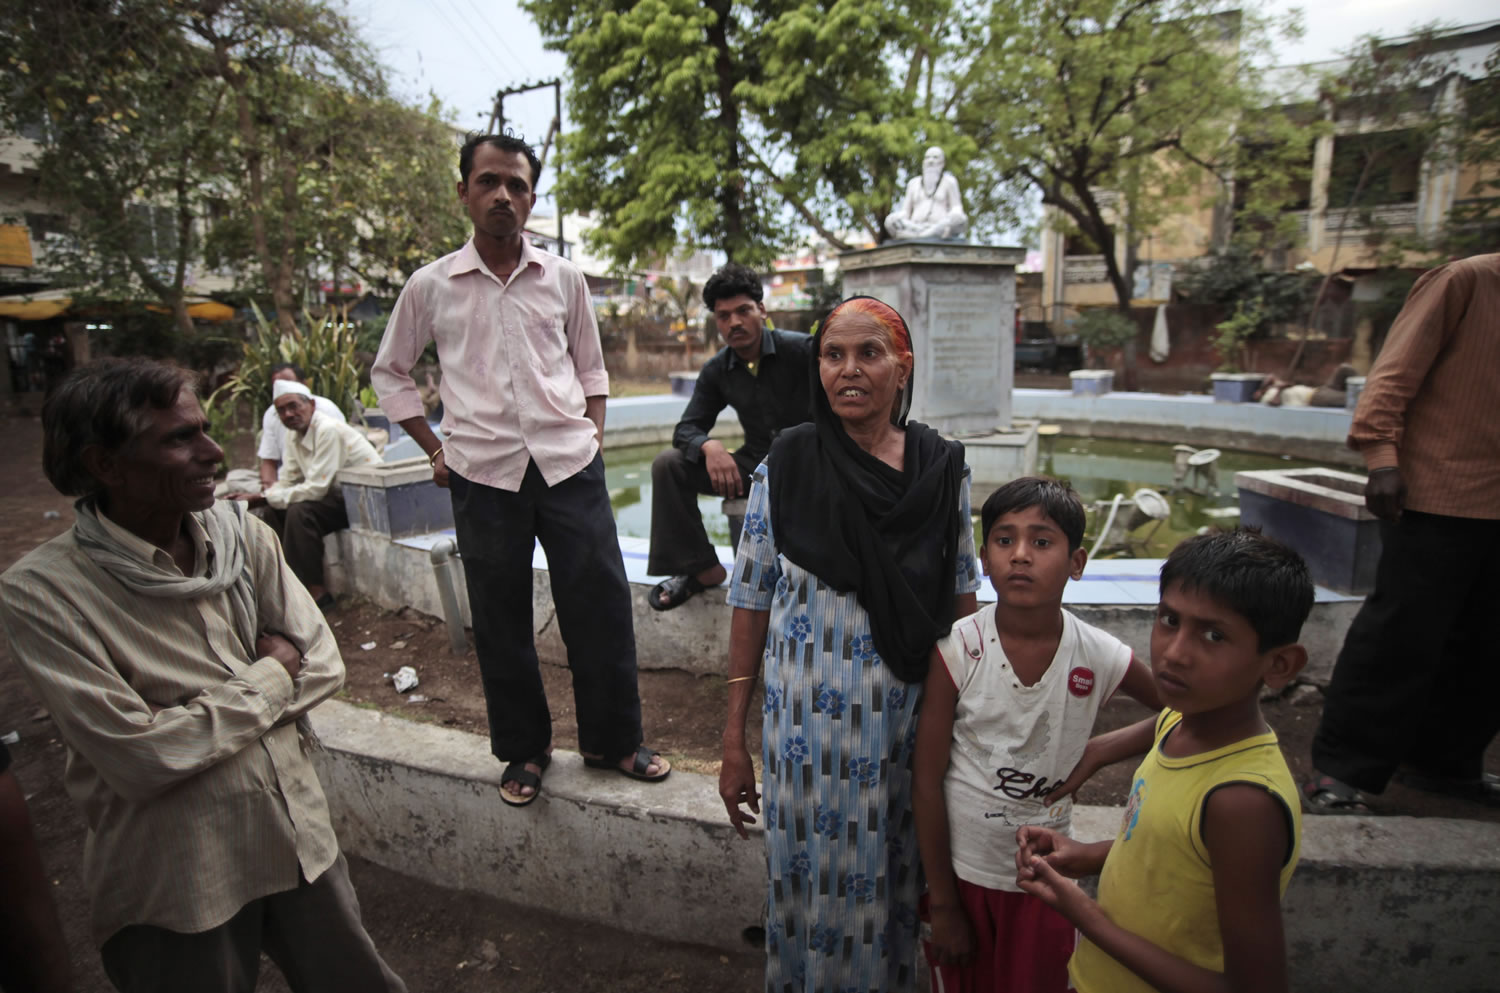 In this May 10, 2012 photo, Fatima Munshi, center, shows the fountain in Khandwa, India where her sons Saroo and Guddu played as she worked as a daily wage laborer about 25 years ago. Living in Australia, Saroo Brierley, 30, reunited with his biological mother, Munshi, in February 2012, 25 years after an ill-fated train ride left him an orphan on the streets of Calcutta.